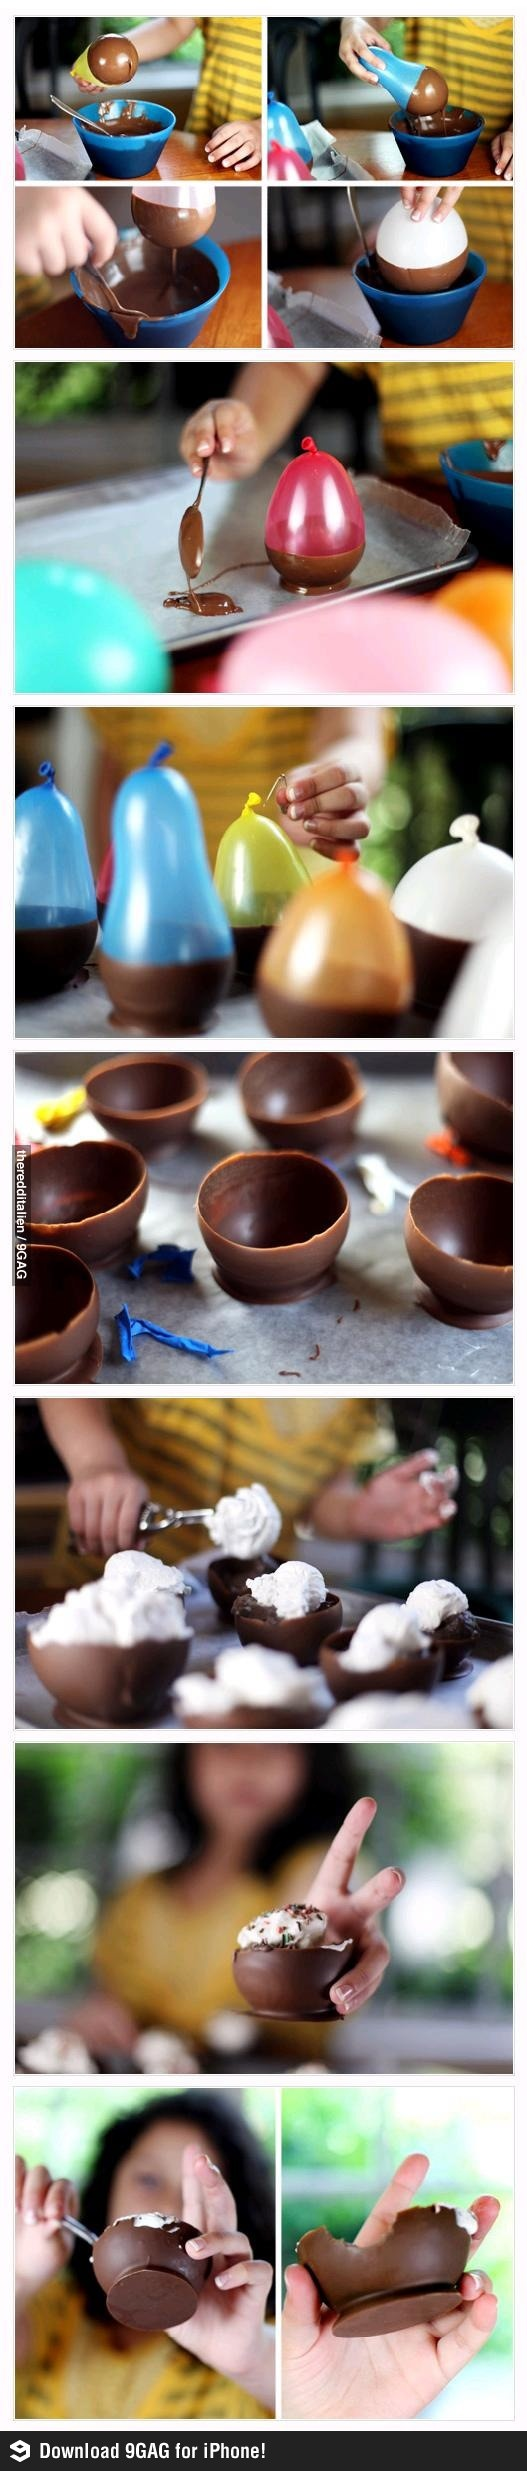 OMG little chocolate bowls for ice cream or something